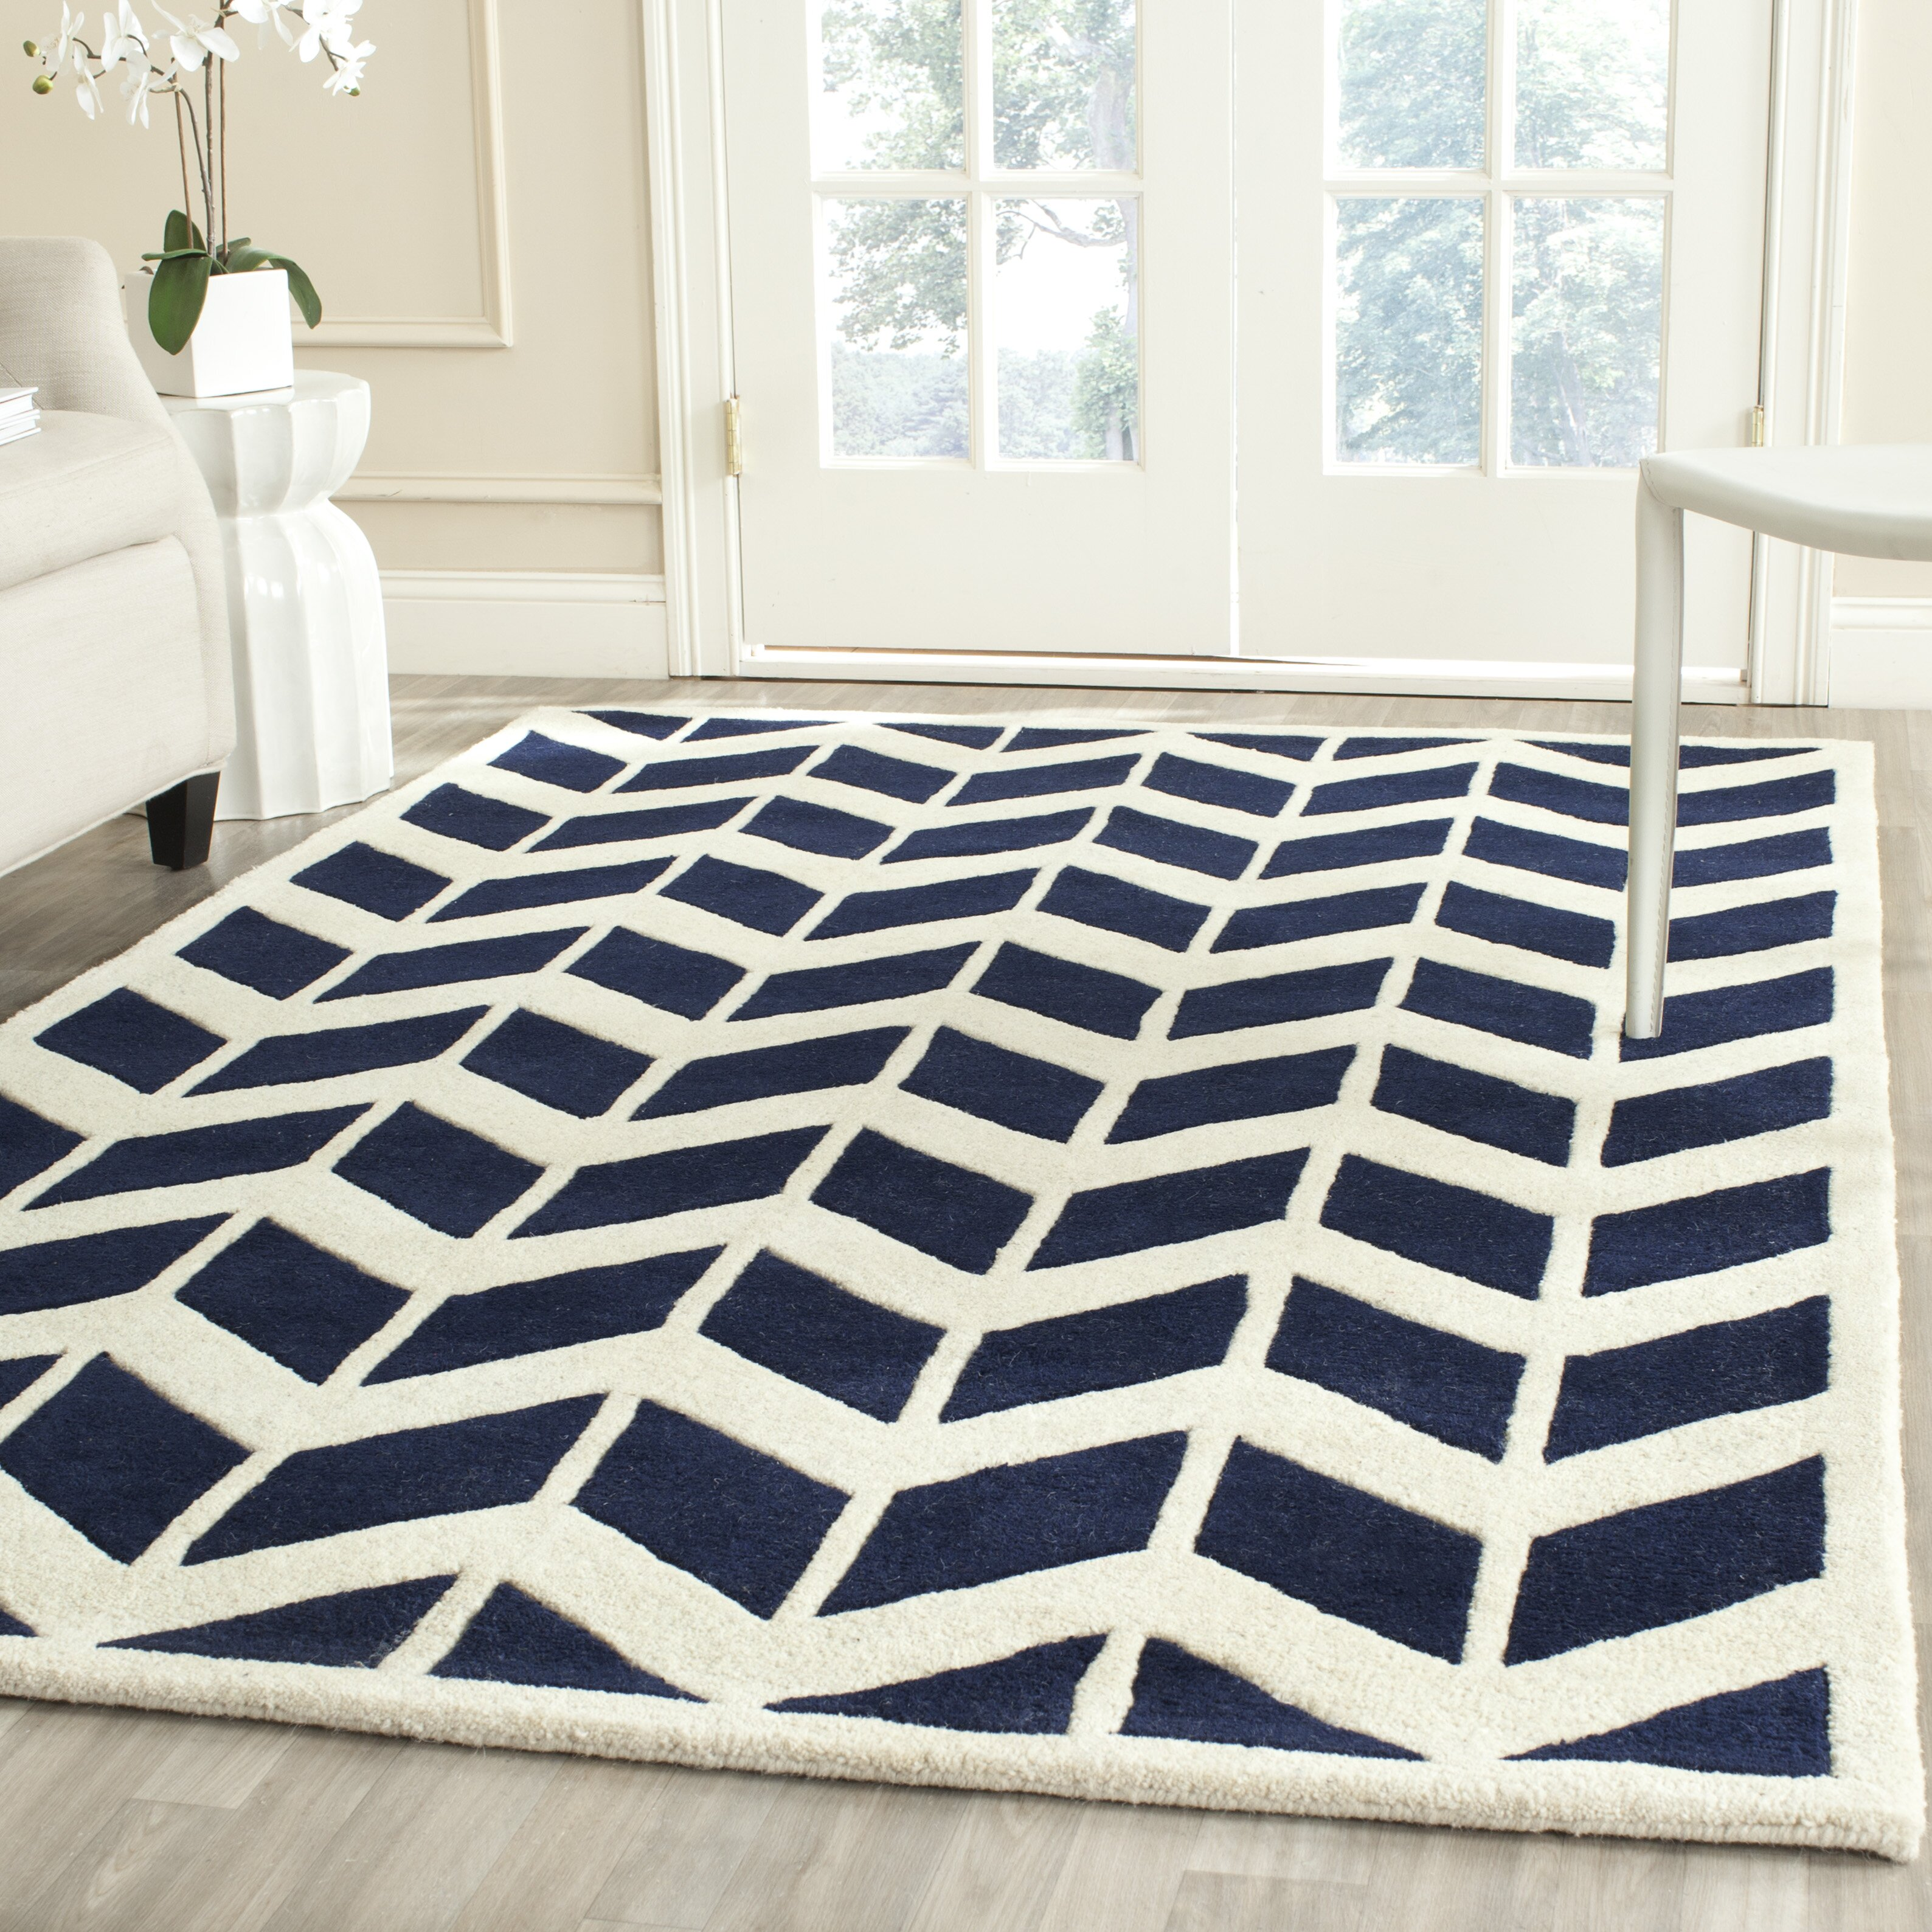 Safavieh Moroccan Blue And Black Area Rug: Safavieh Chatham Dark Blue & Ivory Area Rug & Reviews